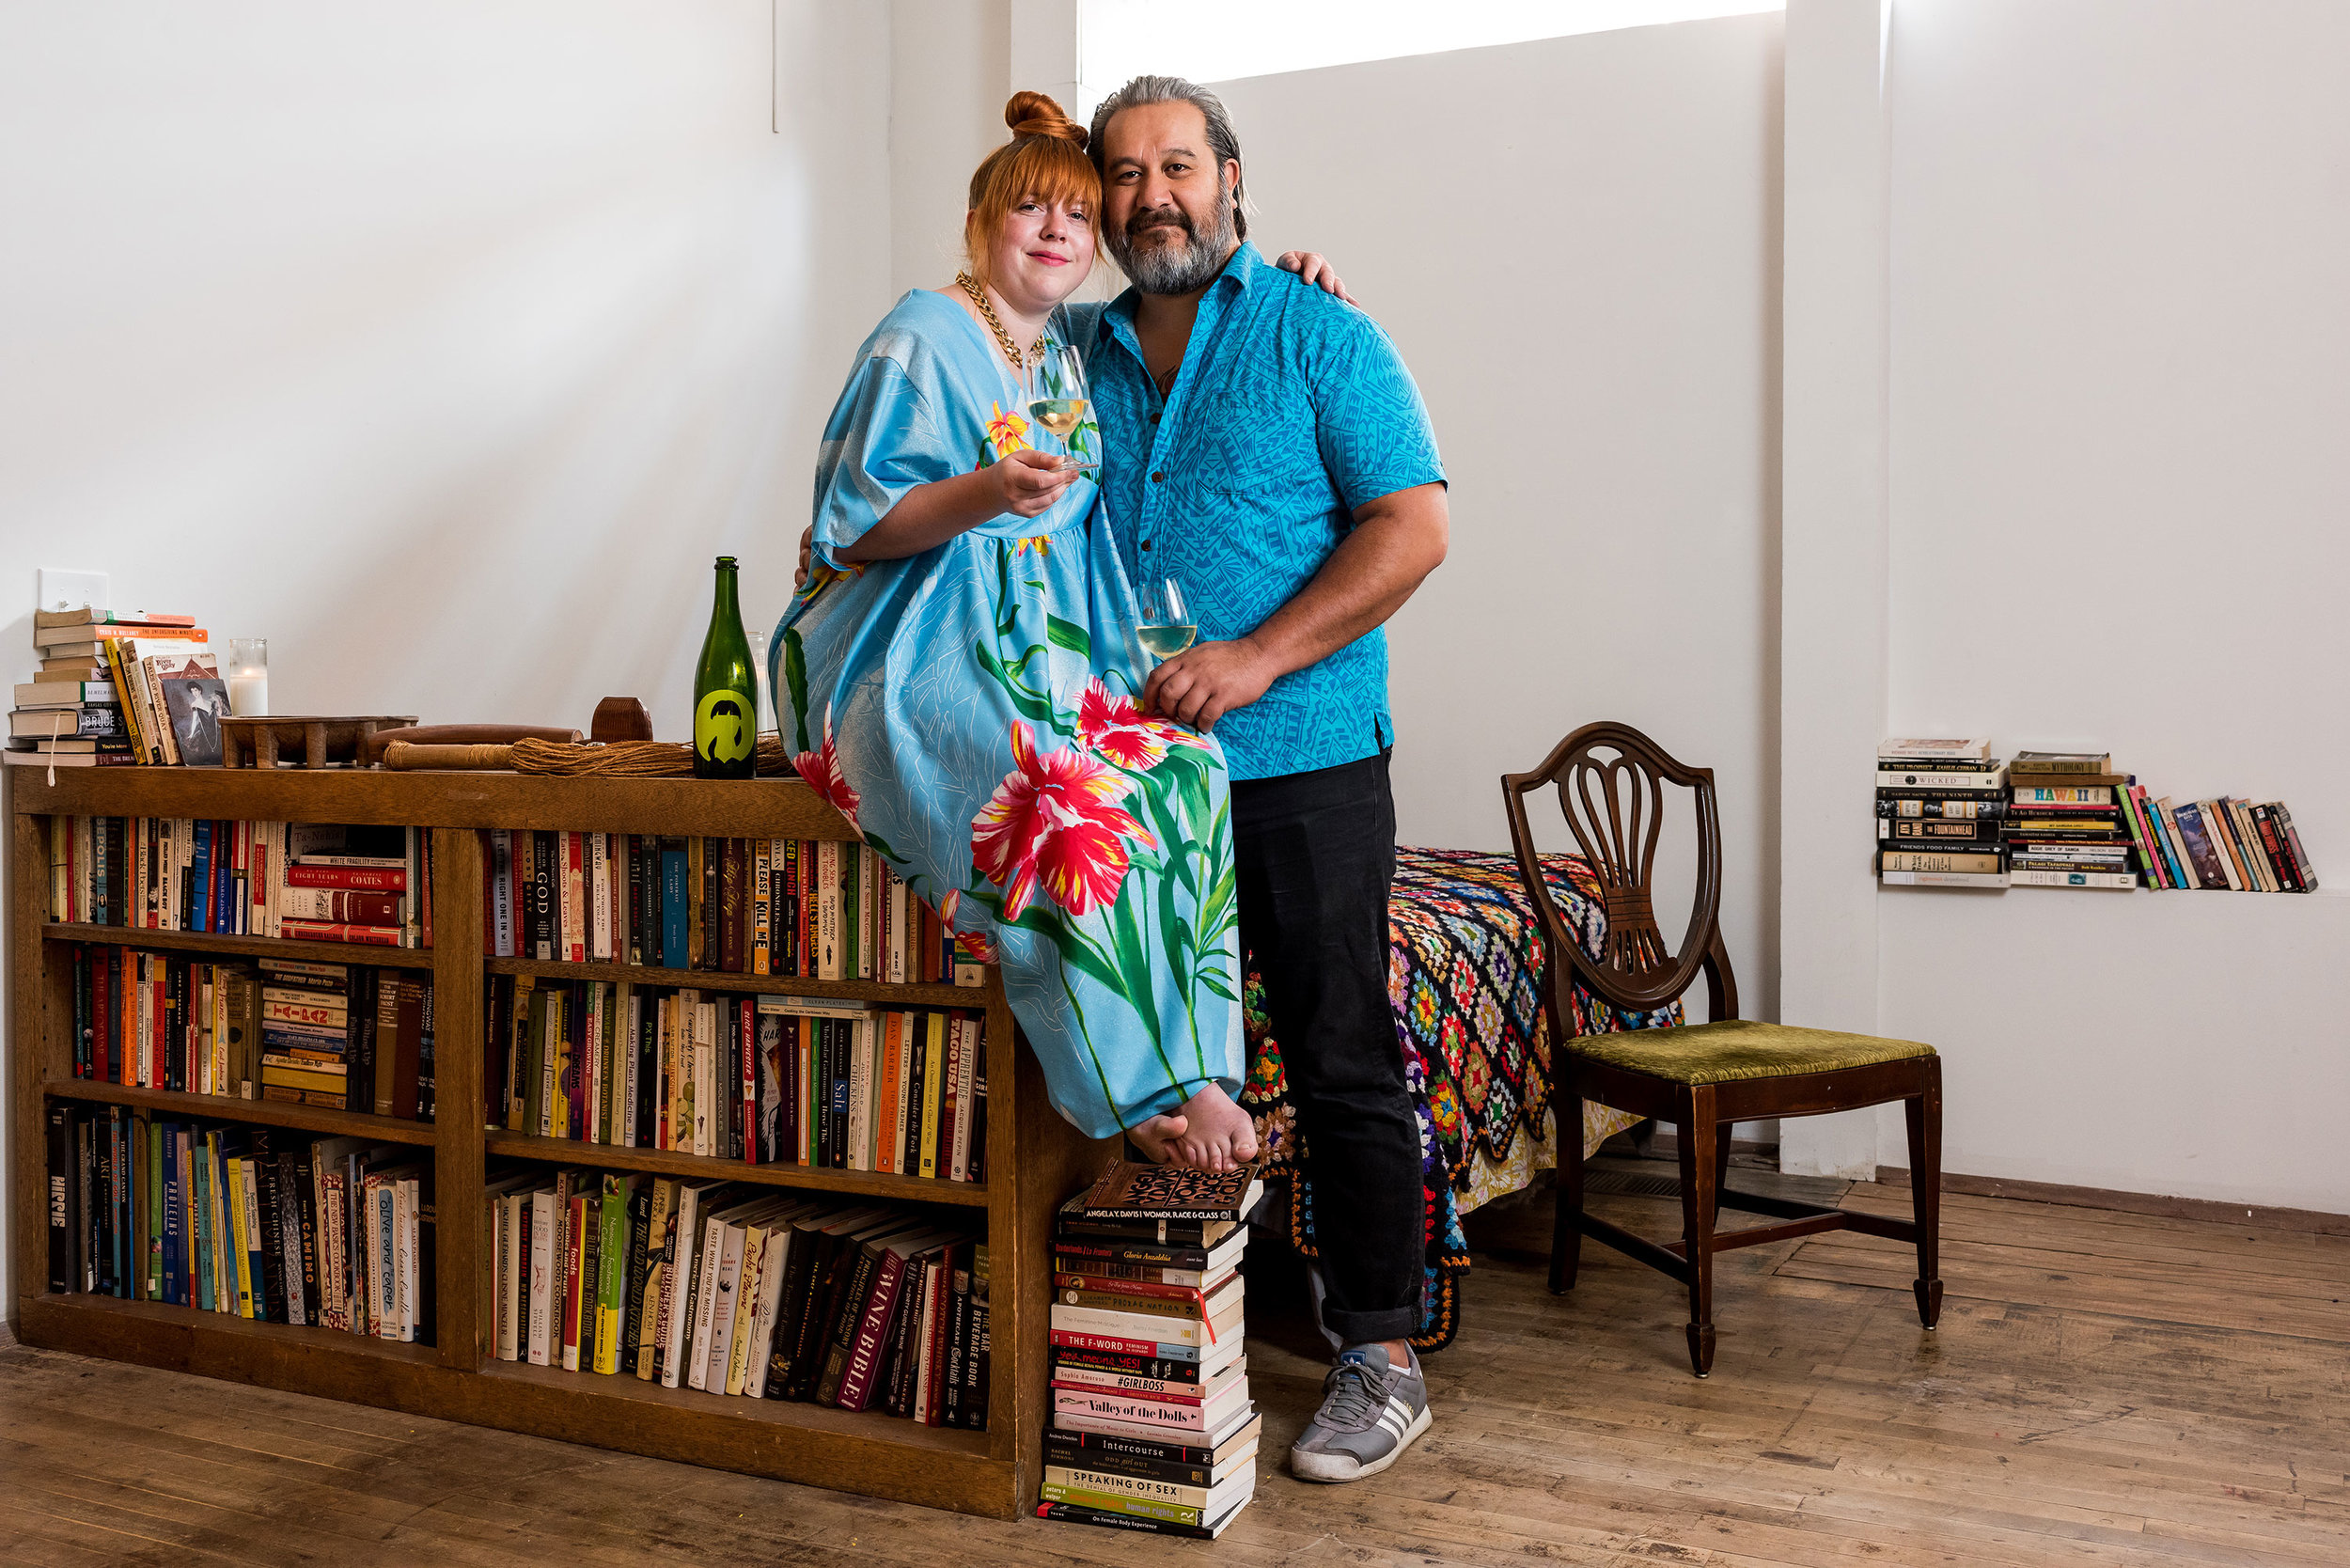 Caitlin Corcoran and Howard Hanna (and their bookshelf!)